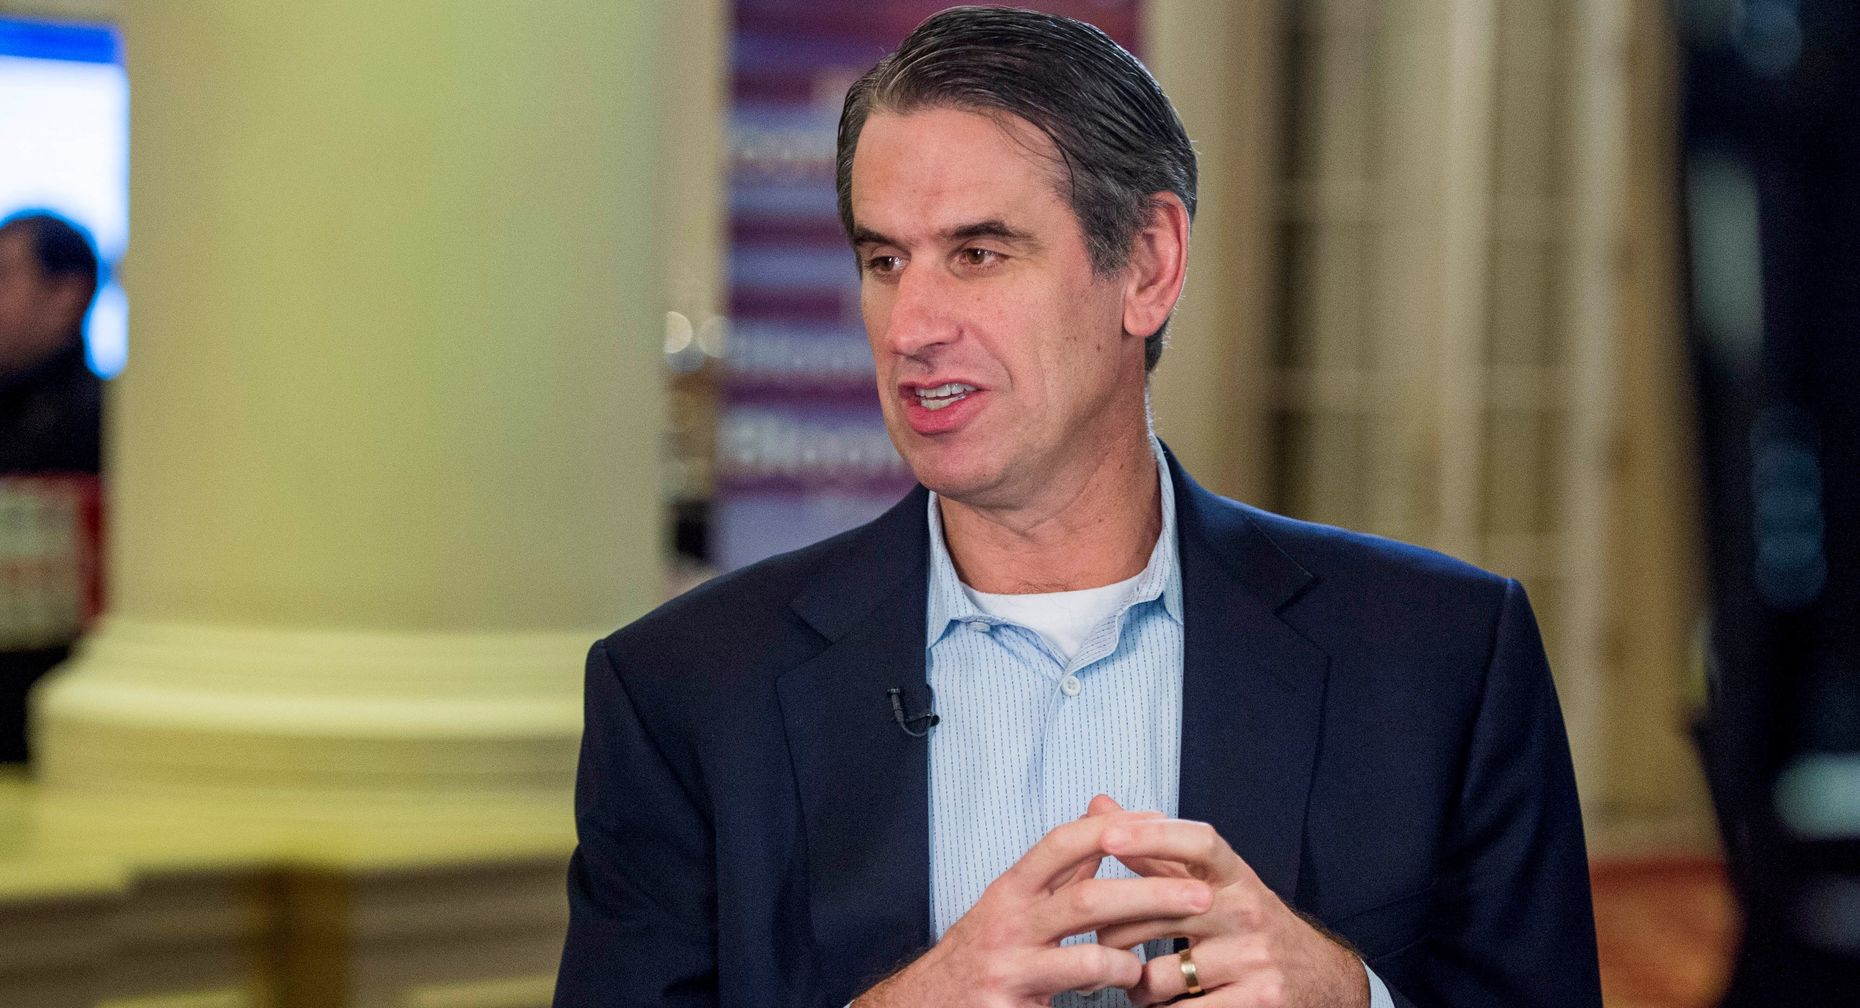 Benchmark general partner Bill Gurley. Photo by Bloomberg.